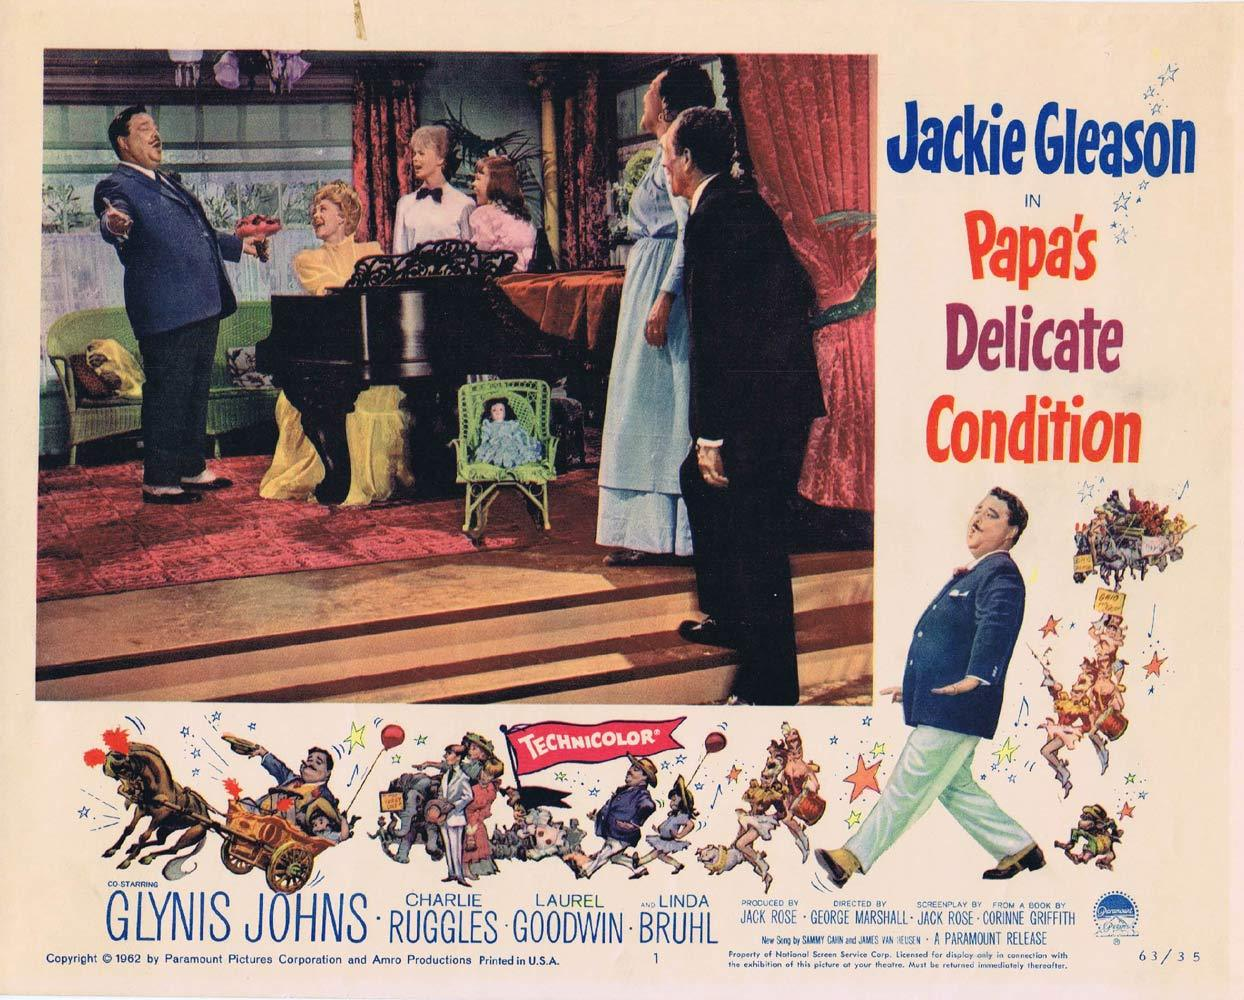 PAPAS DELICATE CONDITION Lobby Card 1 Jackie Gleason Glynis Johns